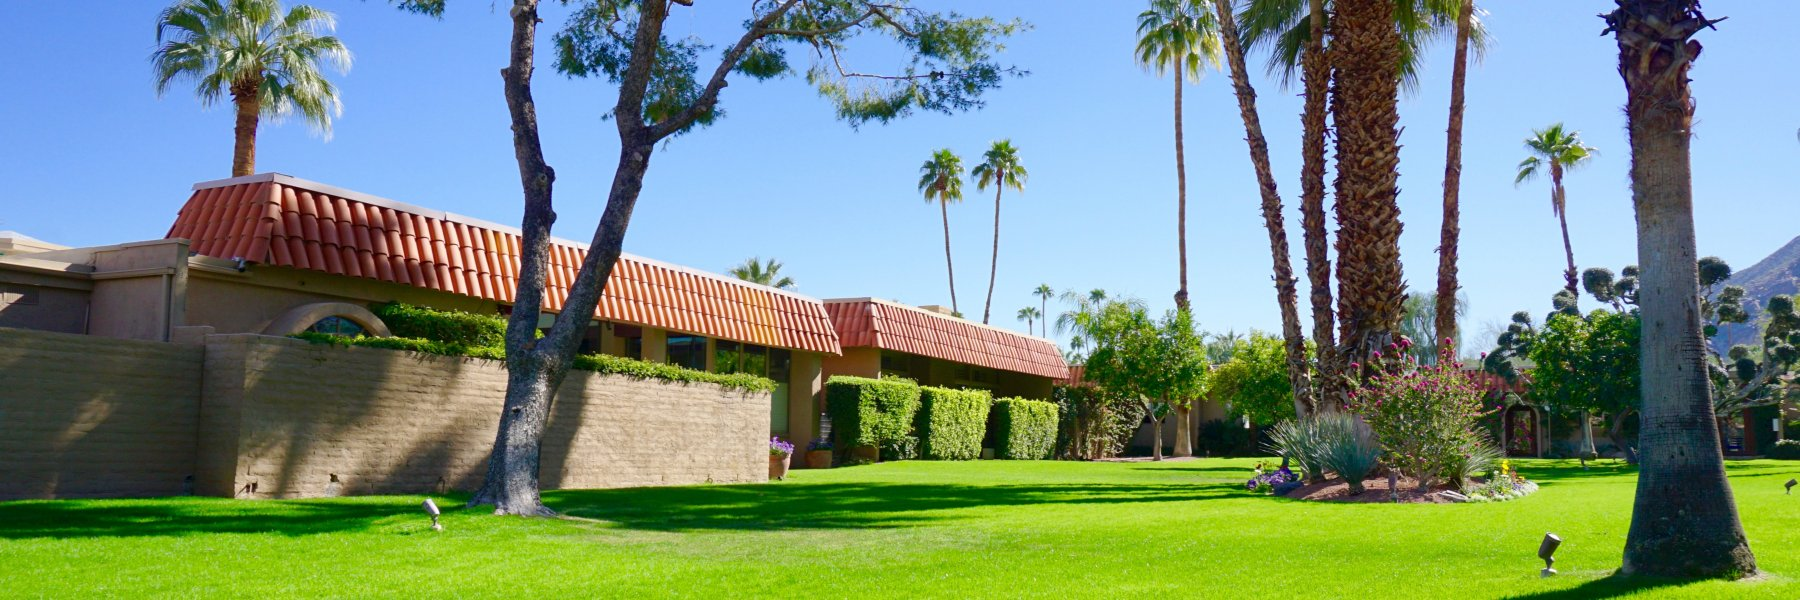 Tennis Club is a community of homes in Palm Springs California